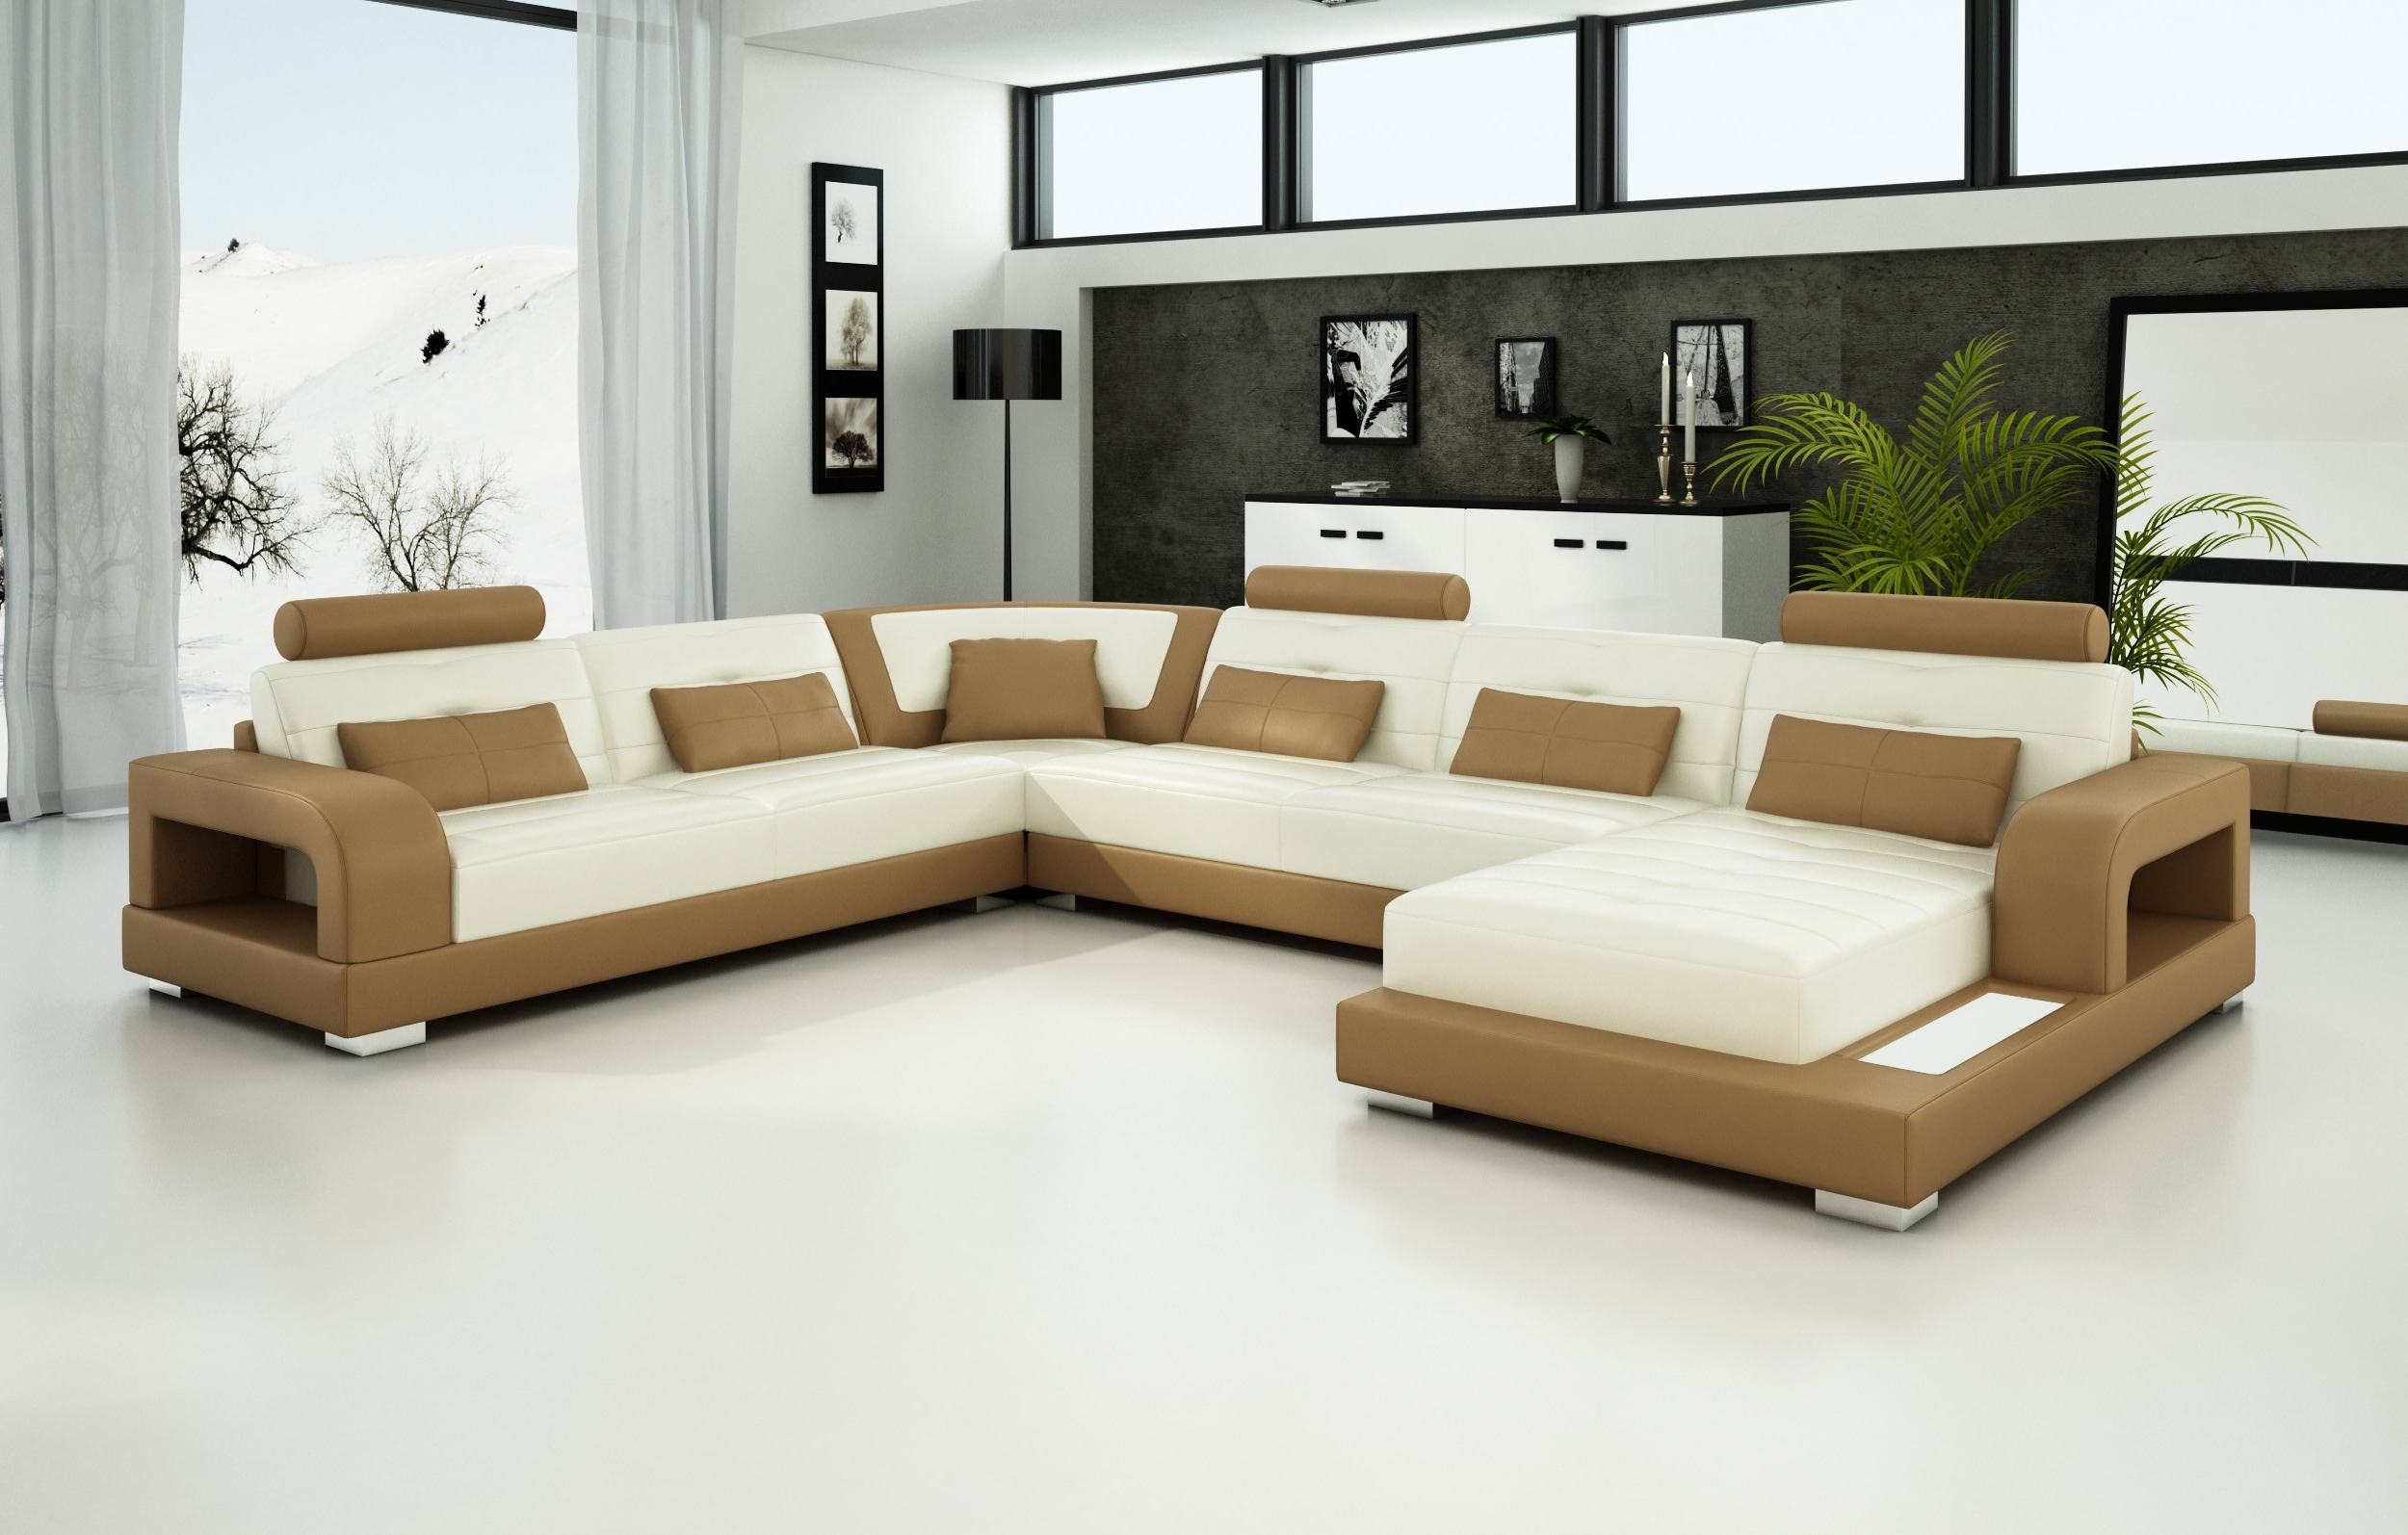 Trinidad And Tobago Sectional Sofas With Most Popular Olympian Sofas Pesaro Light Brown Leather Sofa – Sectional Sofas (View 6 of 15)